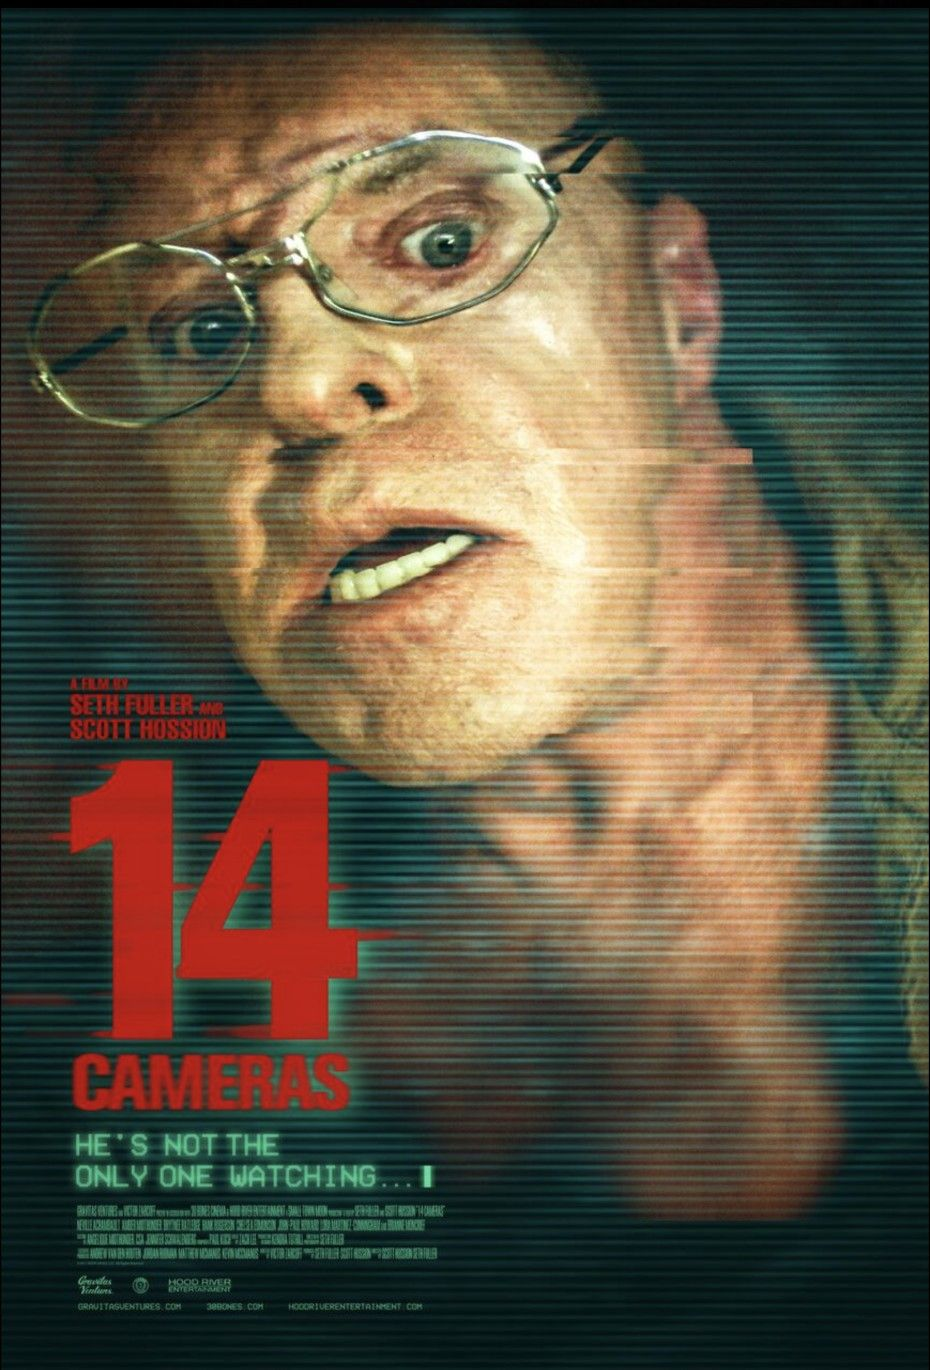 14 Cameras 2018 Full Movies Online Free Full Movies Free